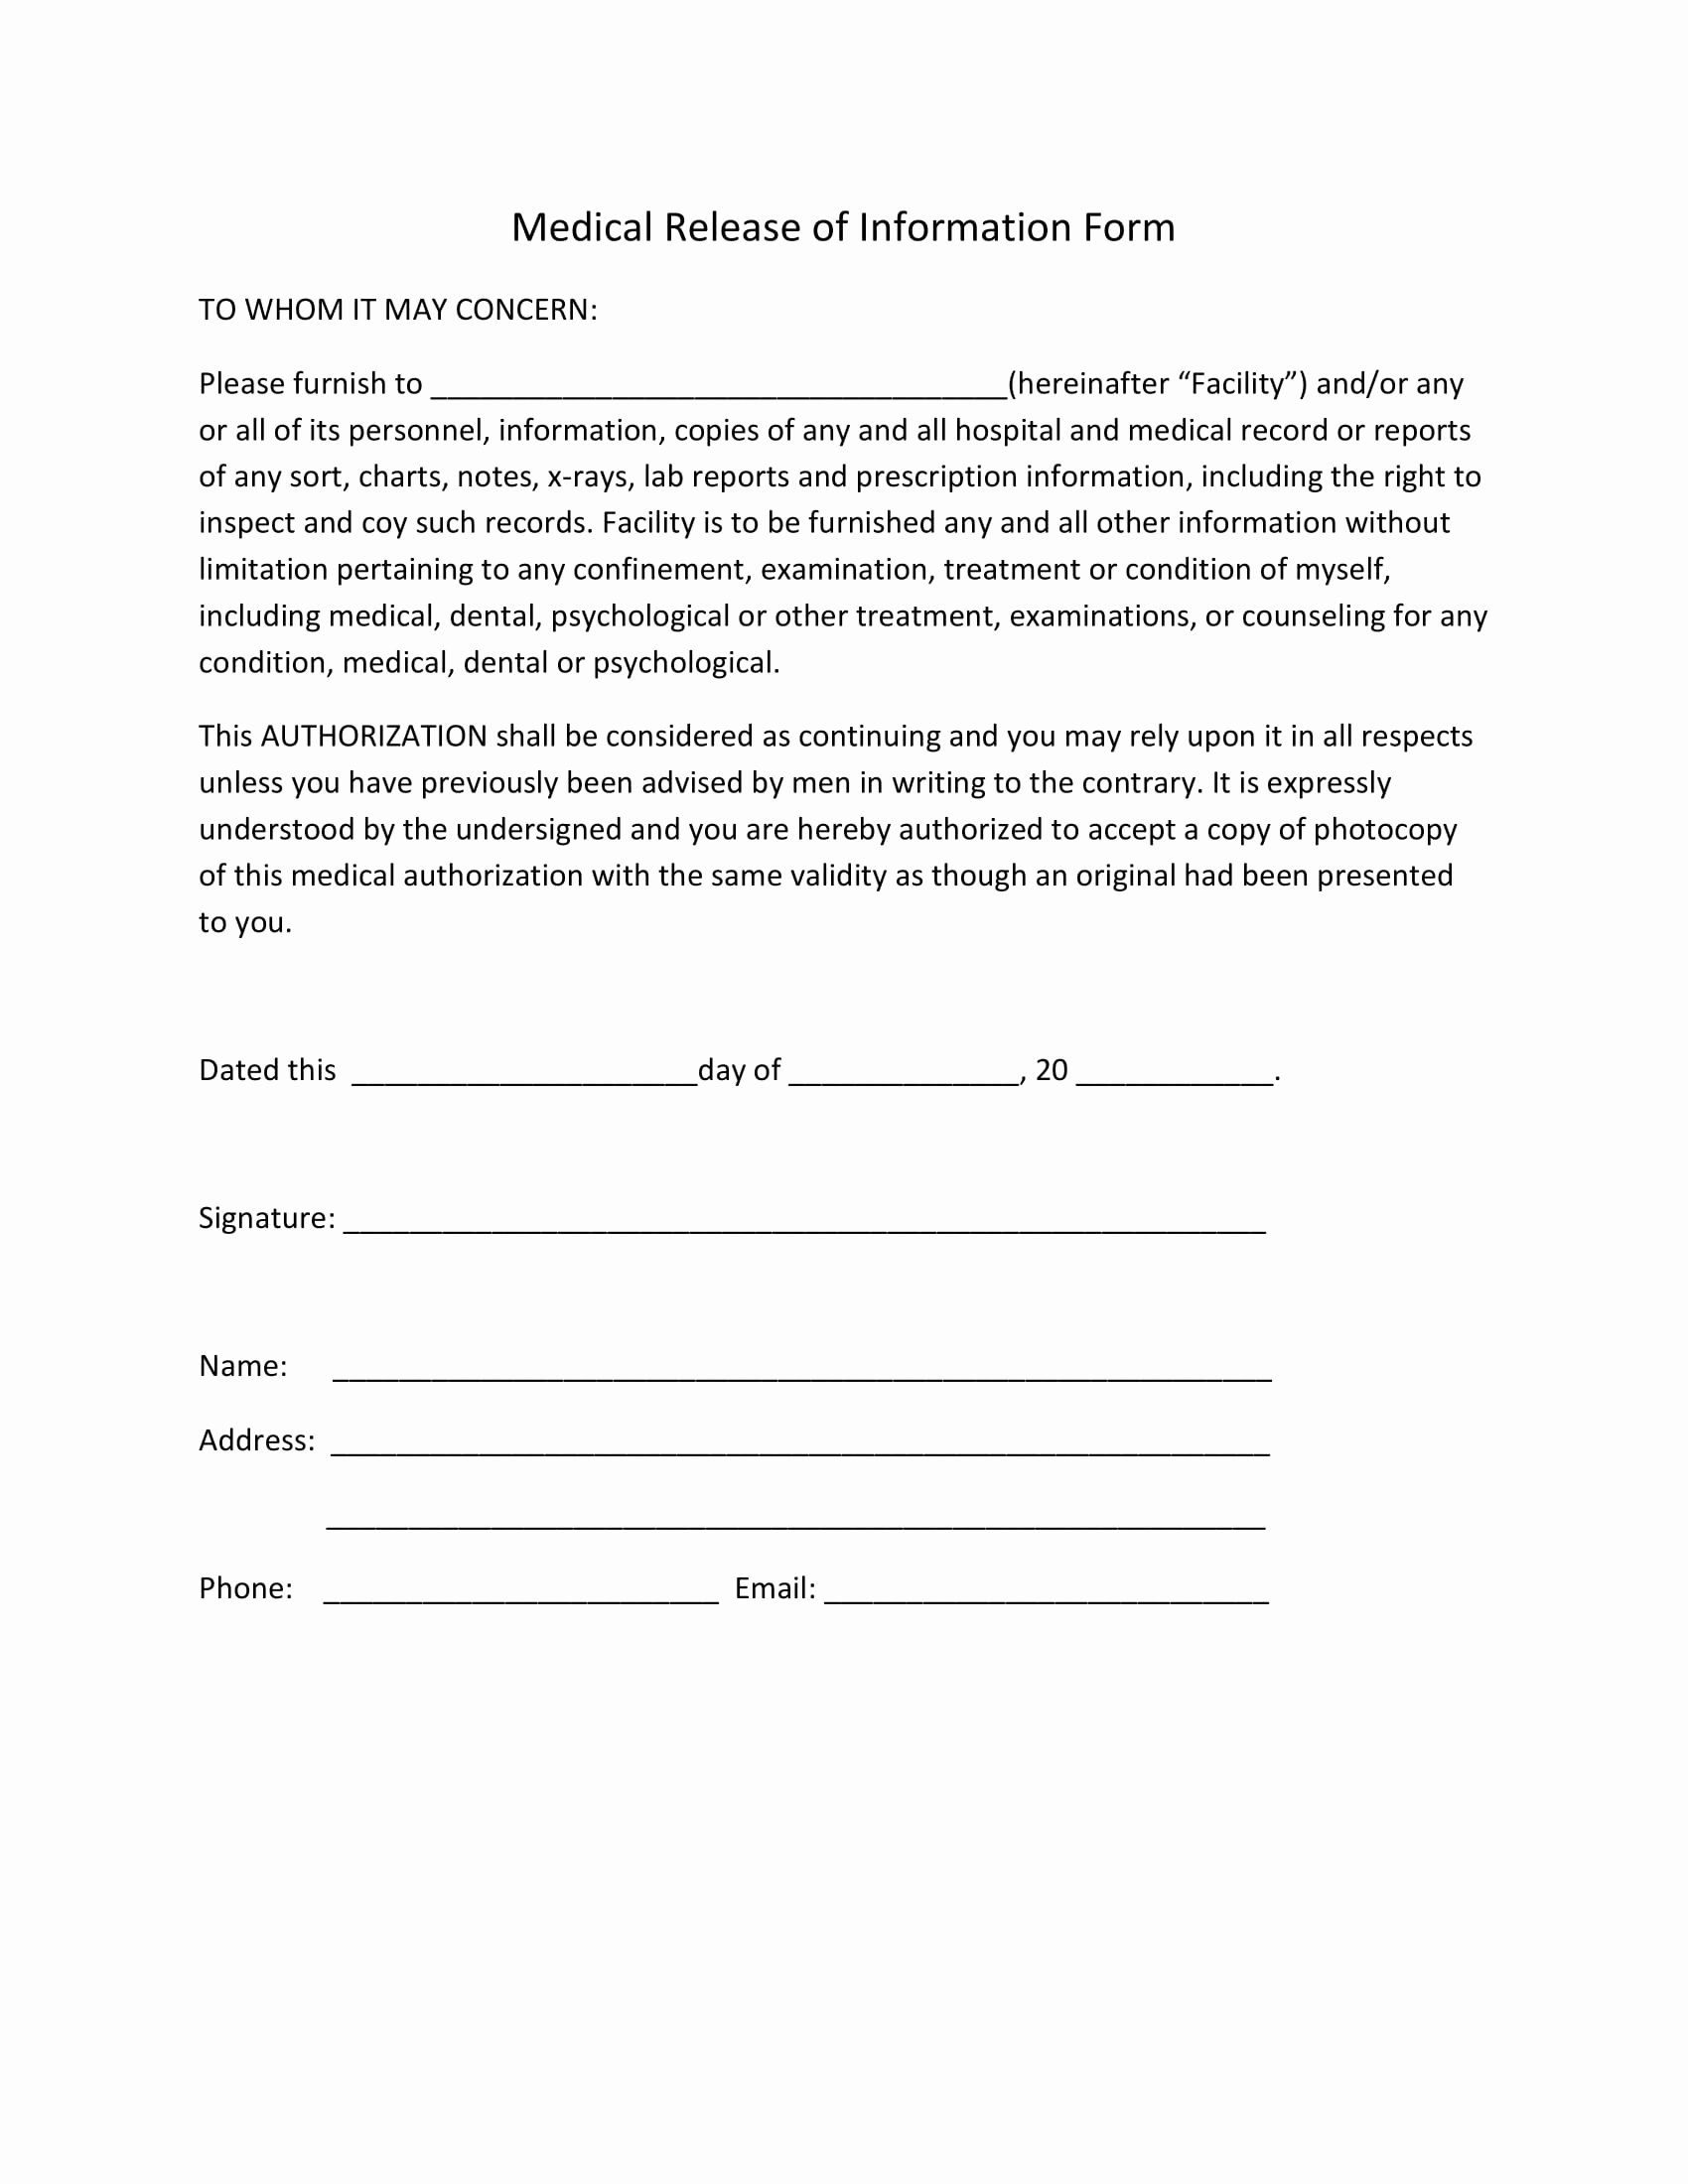 Medical Release form Template Best Of Medical Release forms